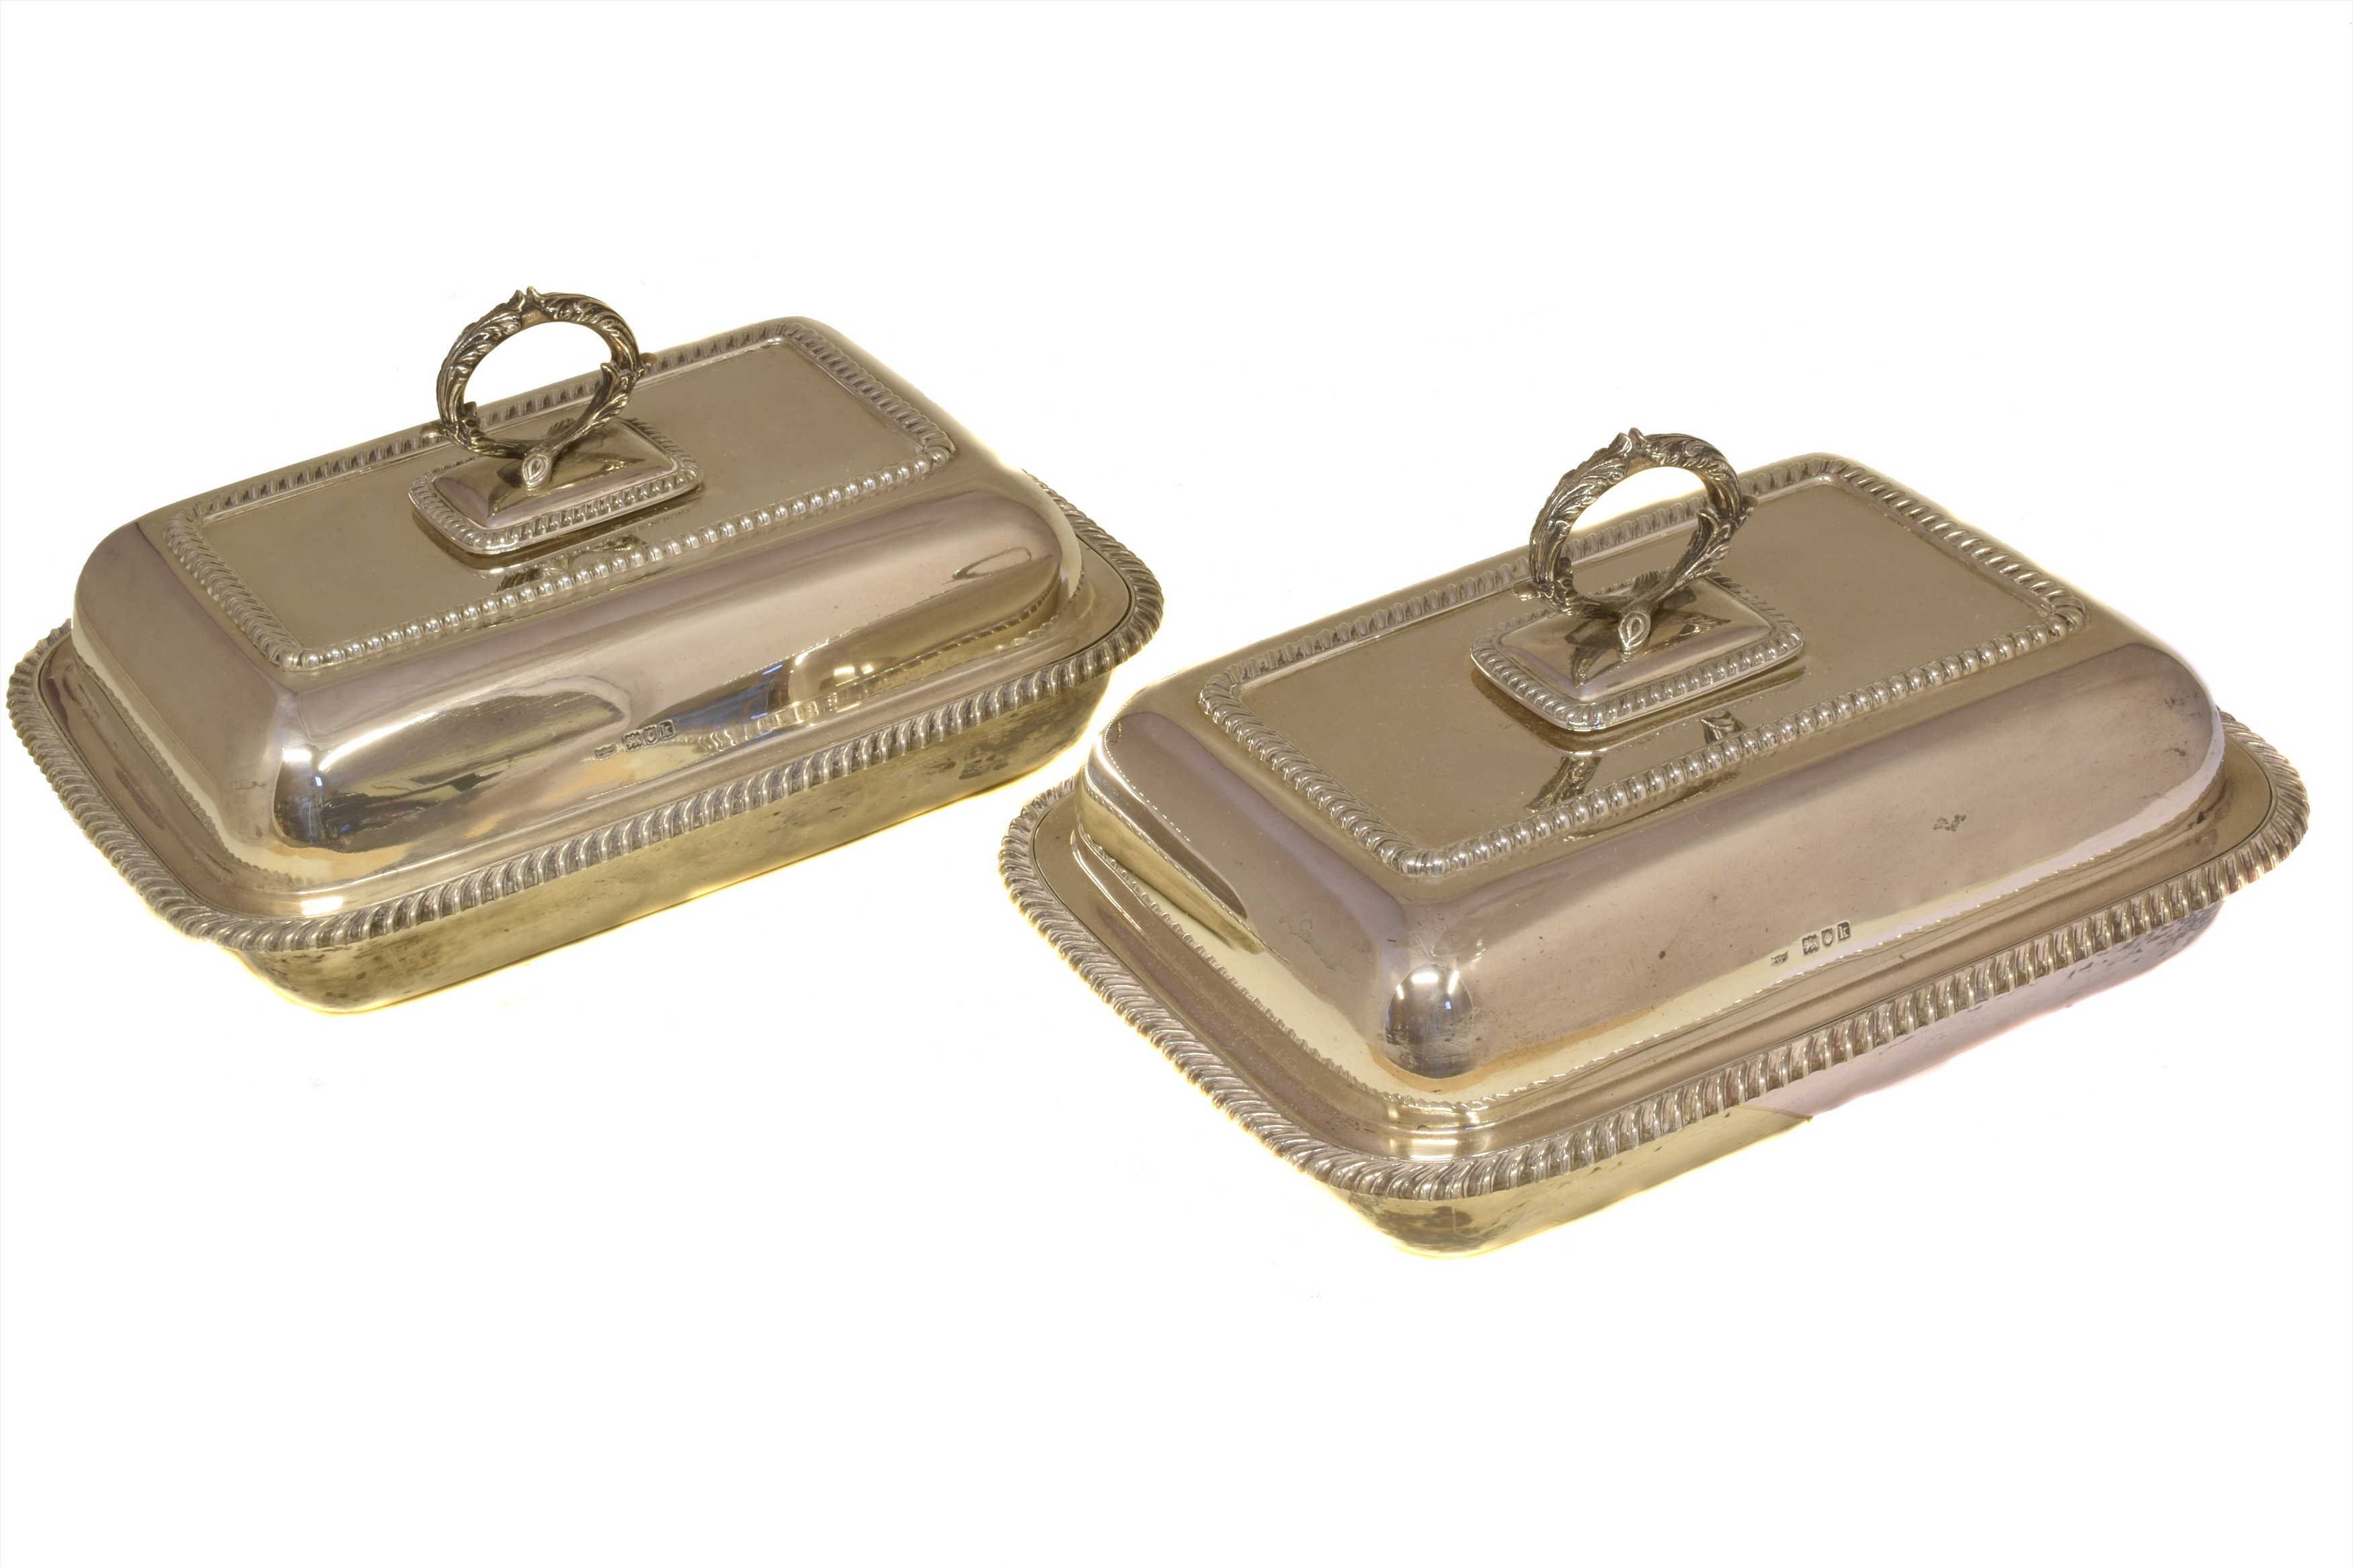 A pair of Edward VII silver tureens, of rectangular form with gadrooned rim and foliate handle, hallmarks for Hawksworth, Eyre & Co Ltd., London, 1905, dimensions 30.5 x 22.8 x 12.5cm, gross weight 113.4ozt.